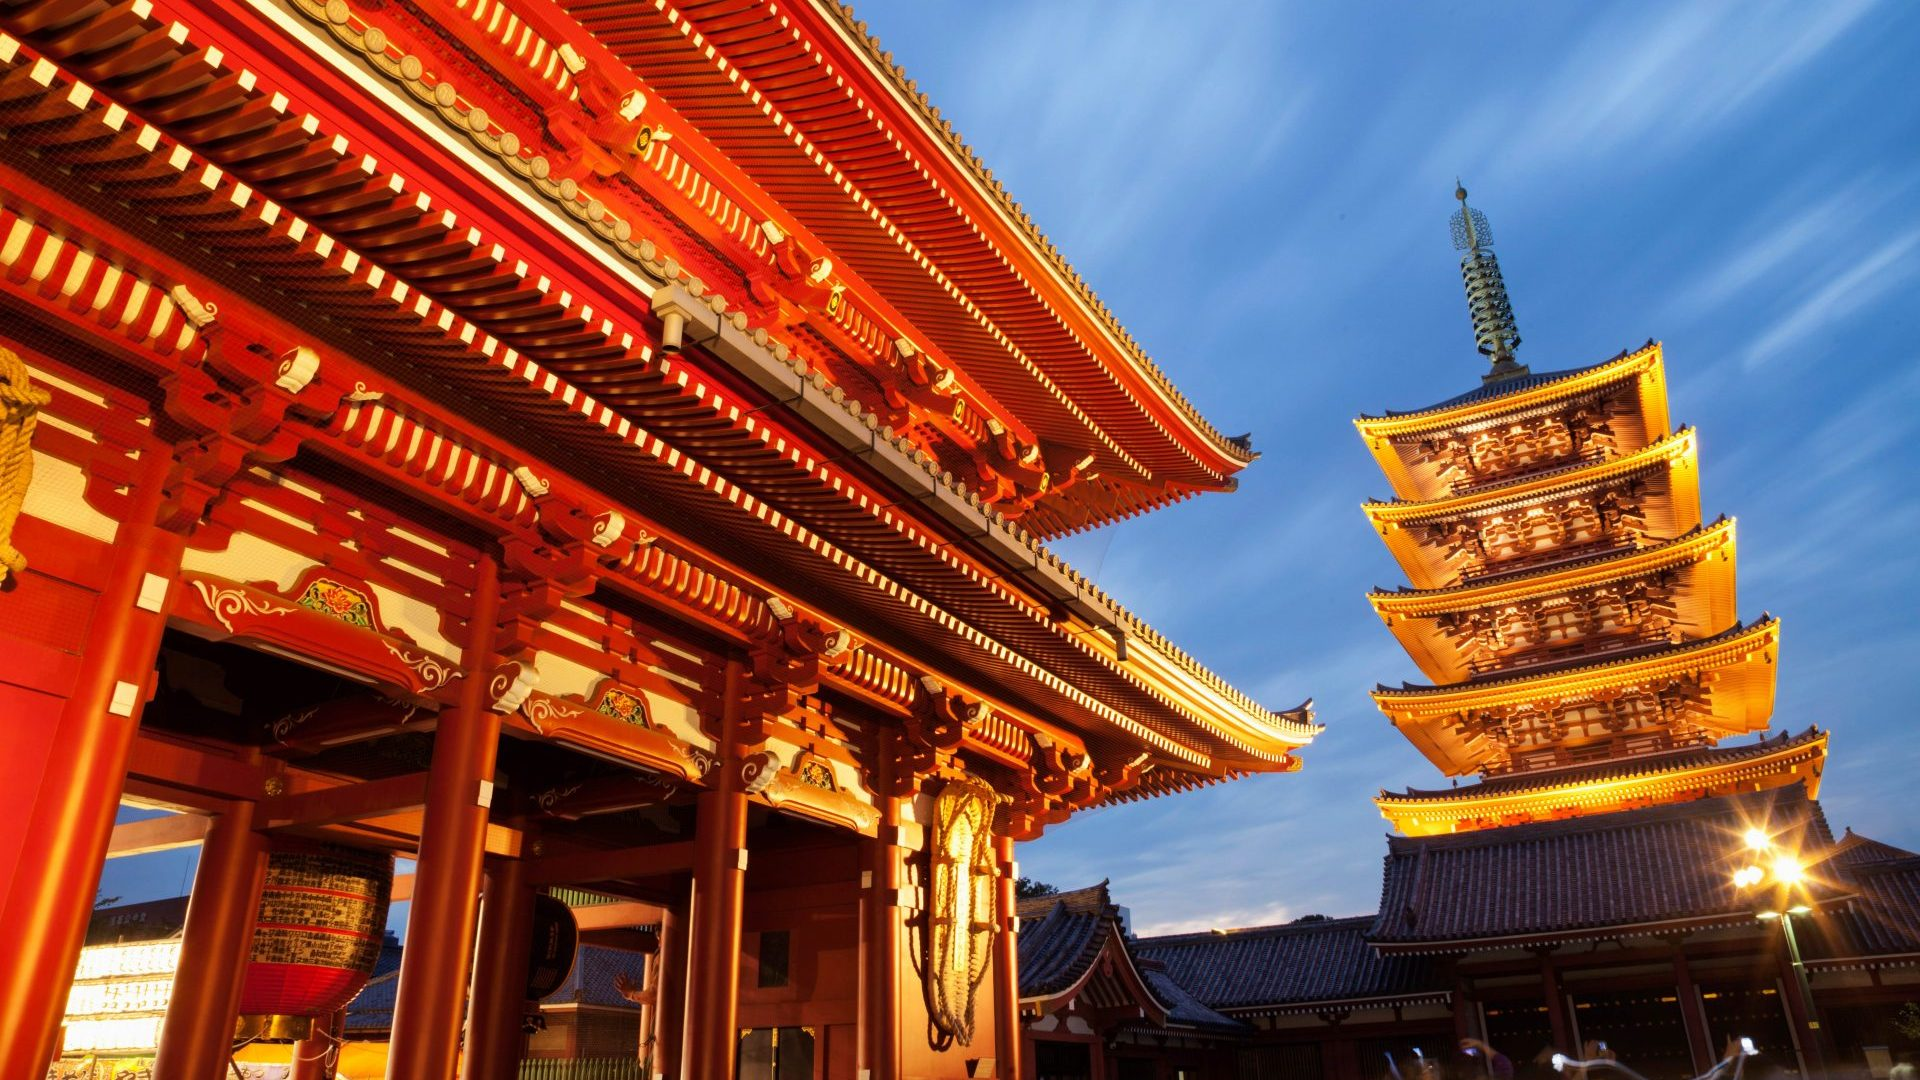 Asakusa Kannon Temple and Hozomon Gate and Pagoda, Tokyo, Japan with GeoEx